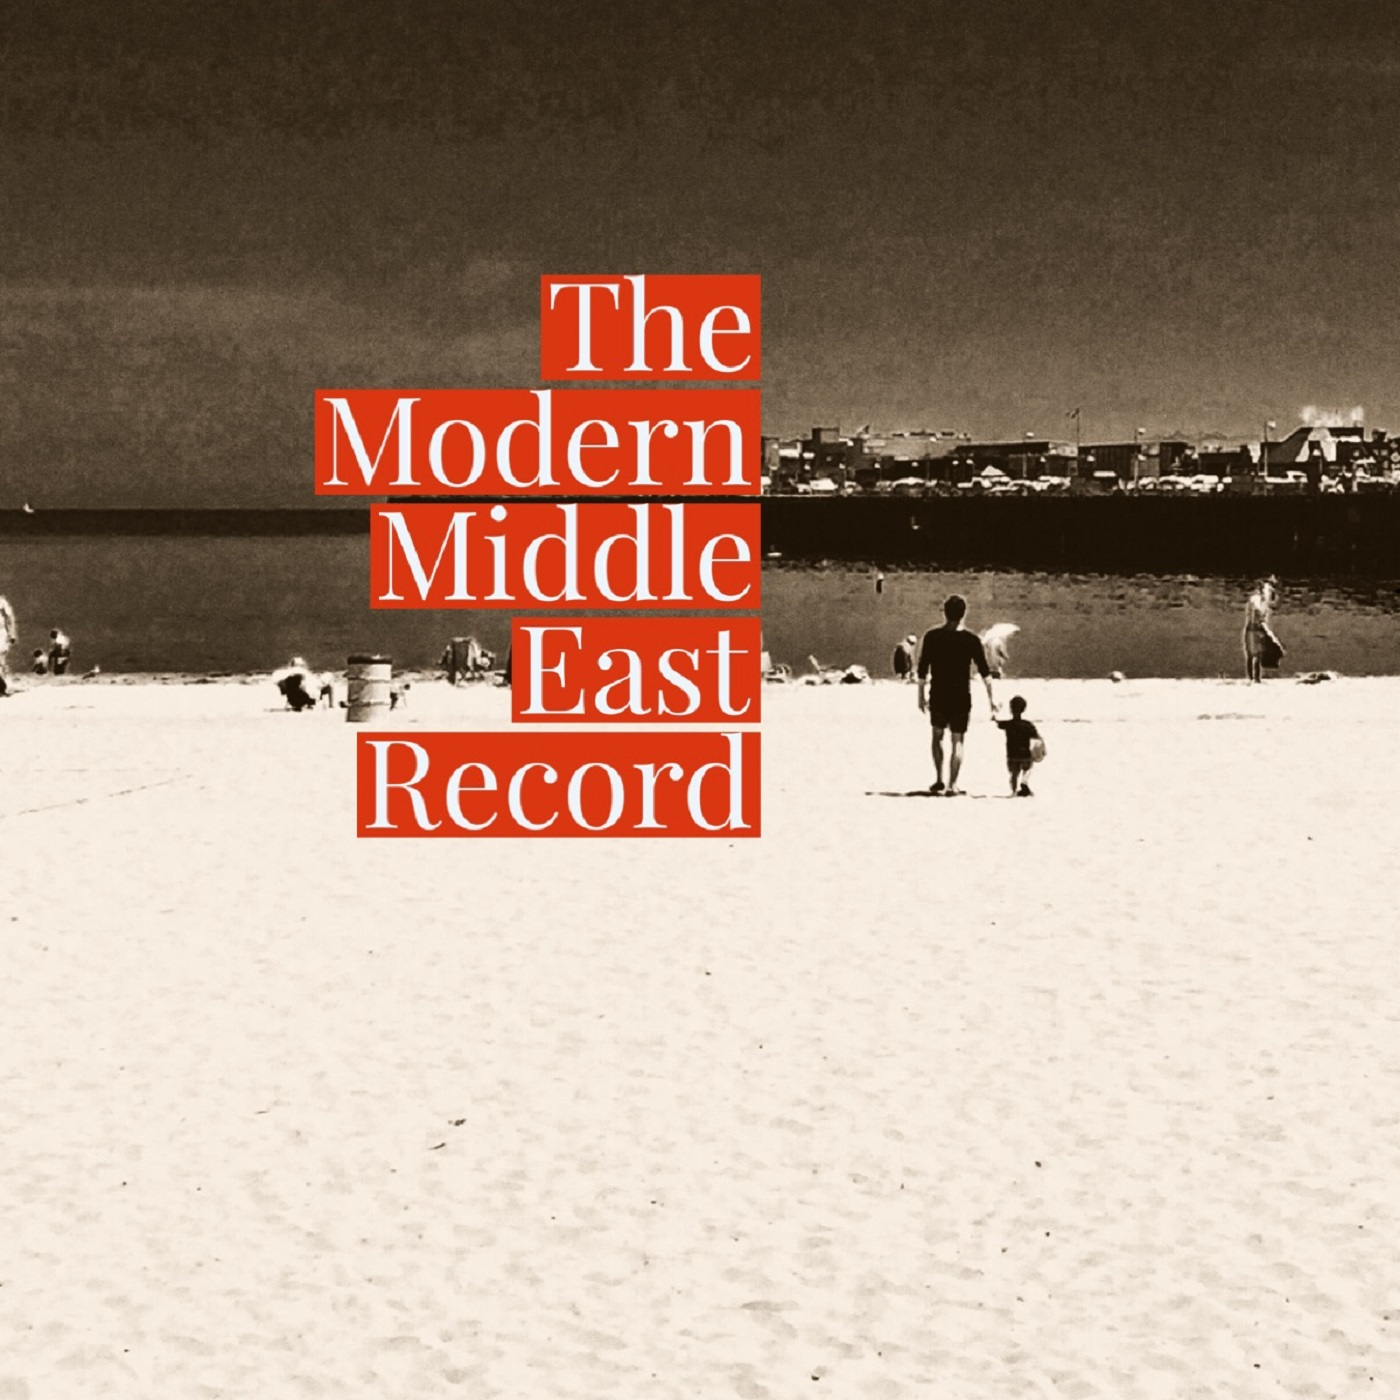 The Modern Middle East Record | Season 1